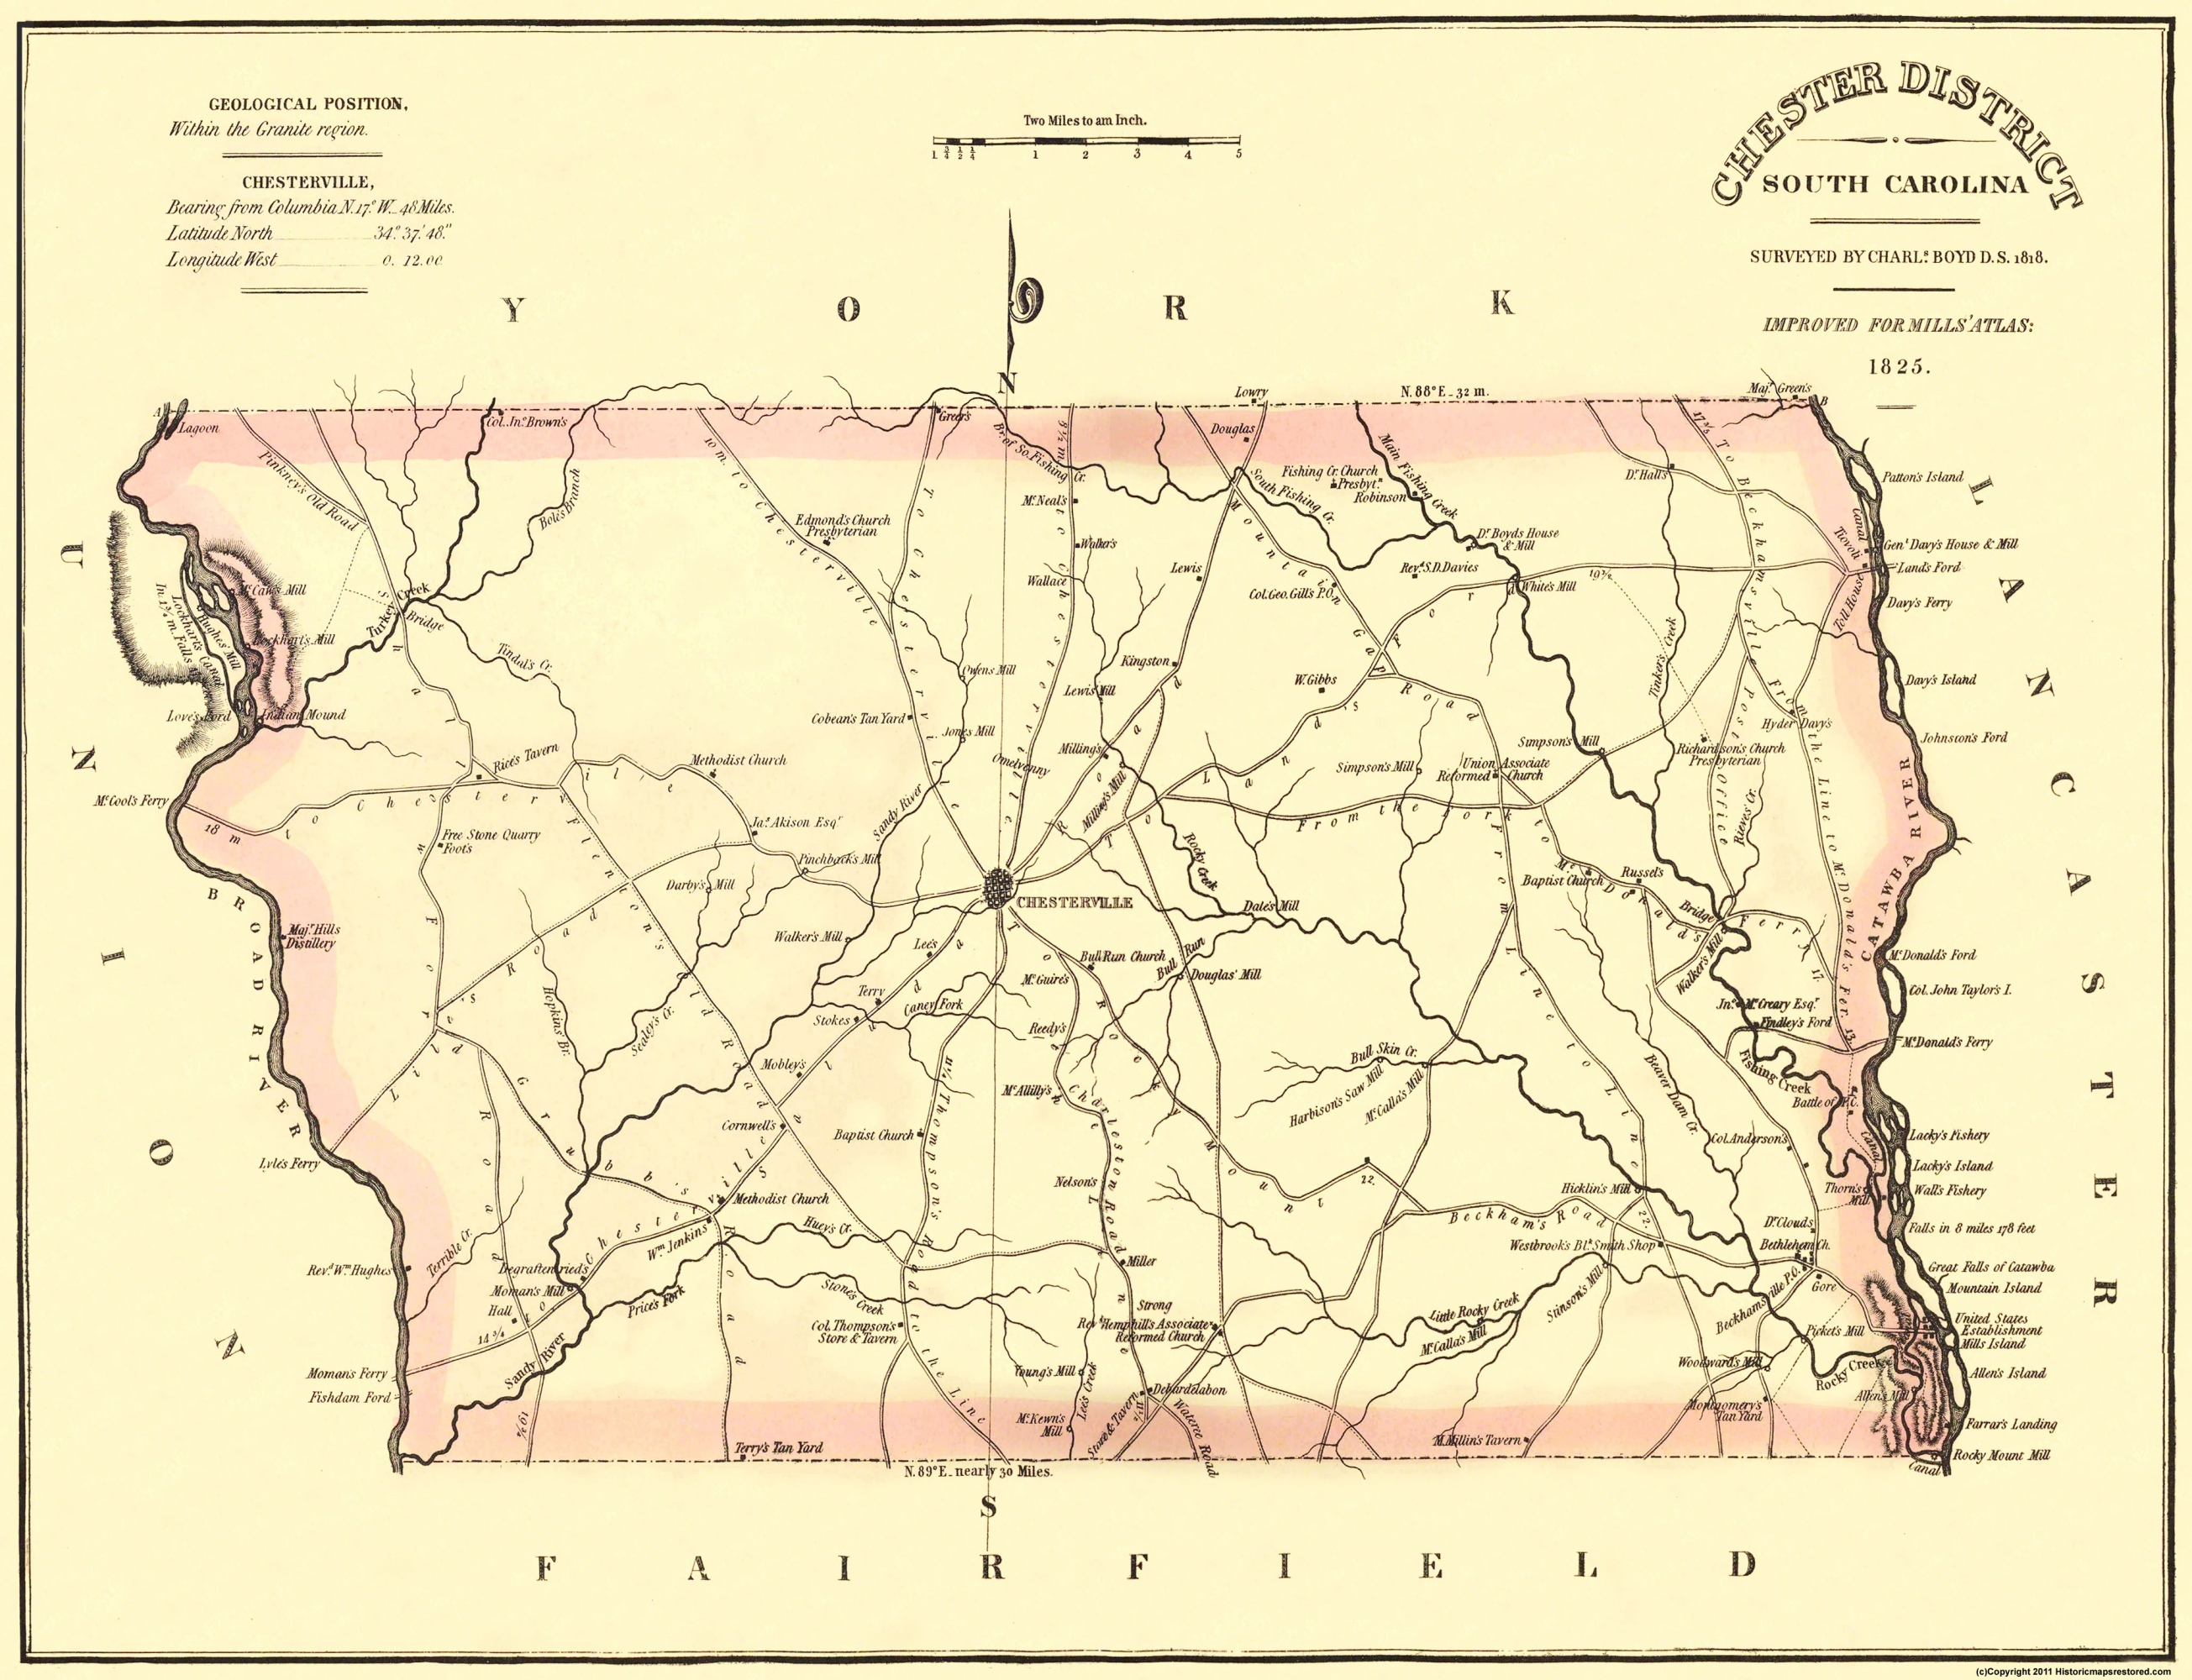 Old County Map - Chester South Carolina Landowner 1825 on